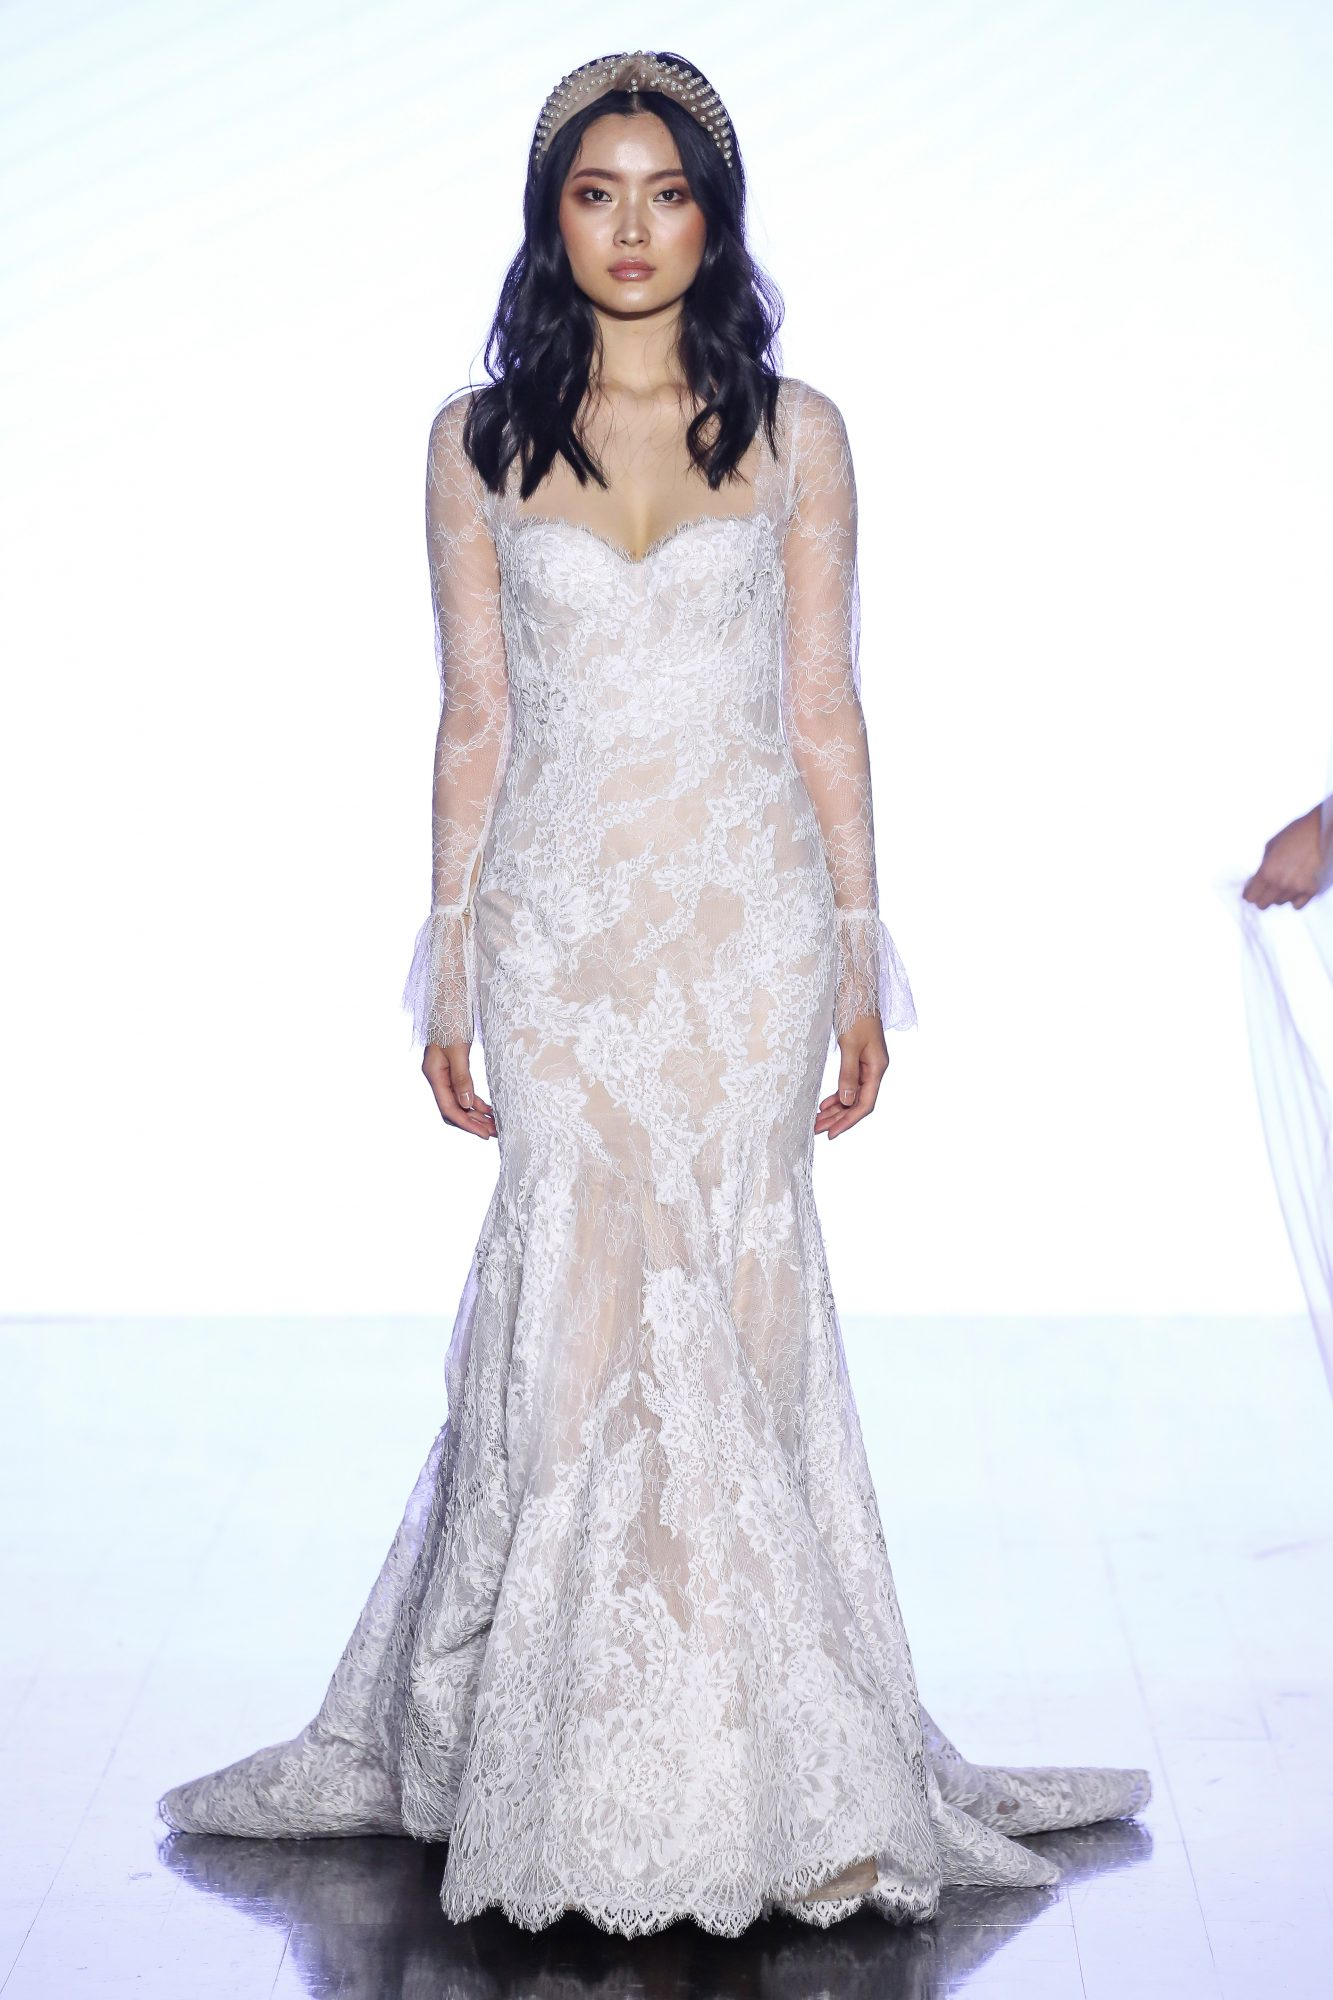 Strapless lace mermaid wedding dress with sweetheart neckline paired with jacket